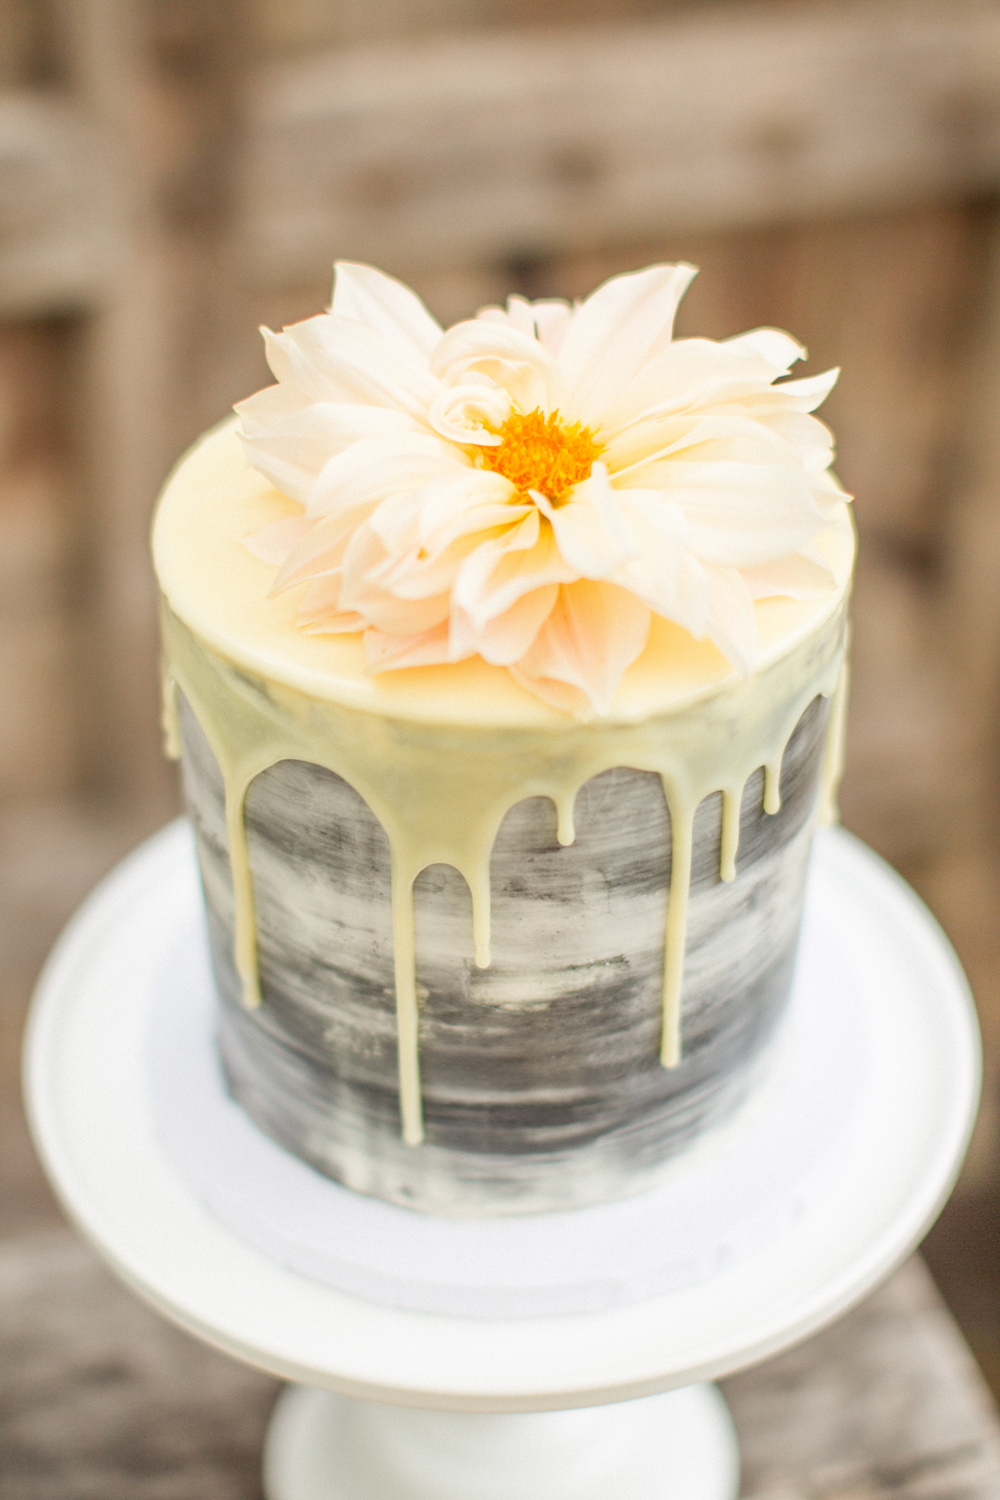 Cozy, Ethereal Wedding Inspiration at The General's Daughter, generals daughter wedding inspiration, drip wedding cake